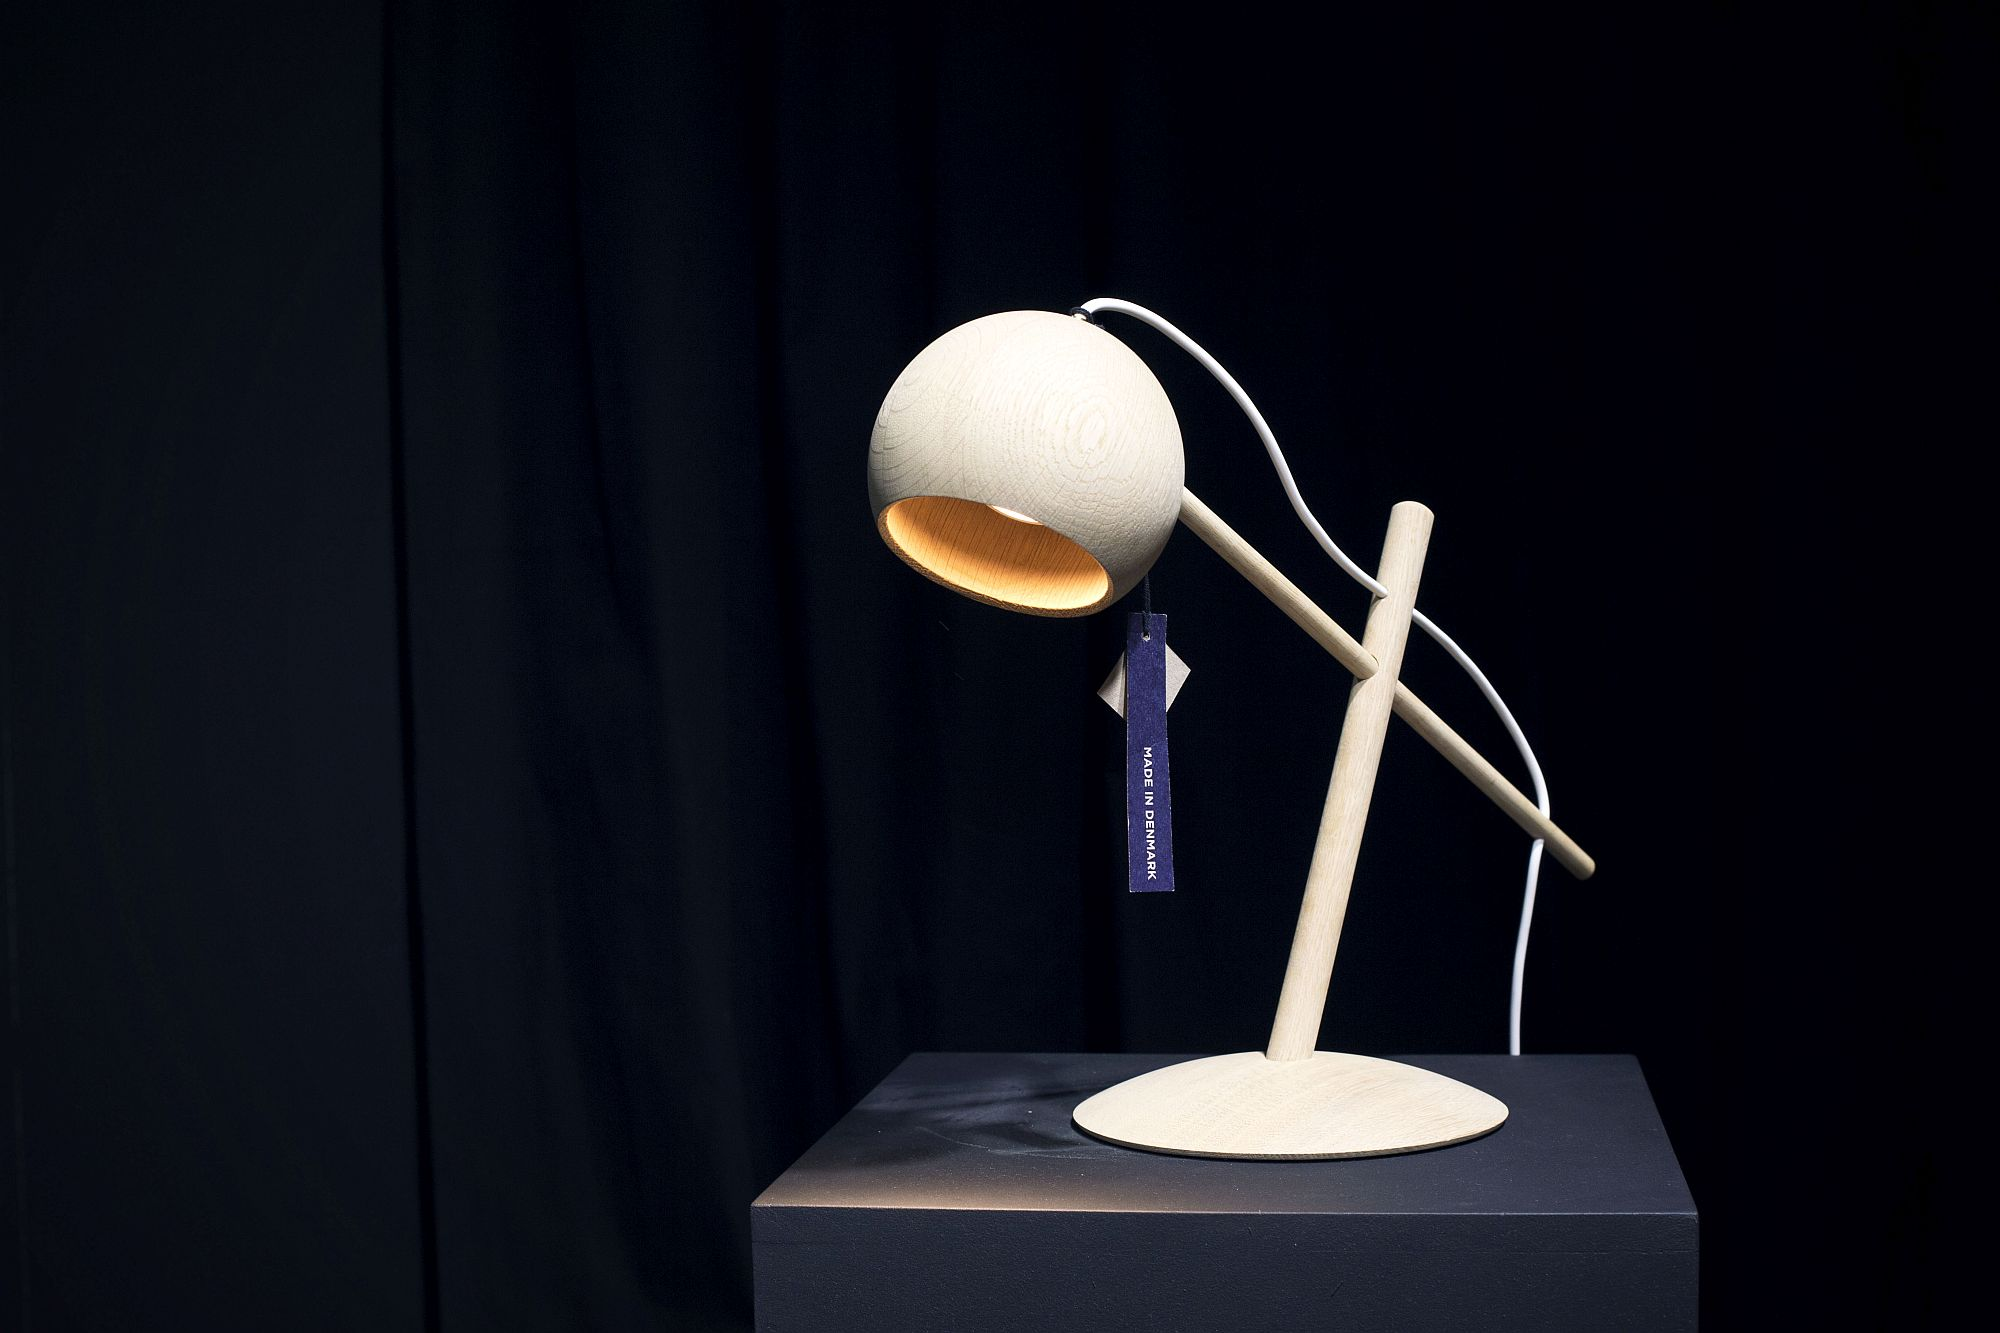 Stylish-table-lamp-in-wood-from-BRDR-KRUGER